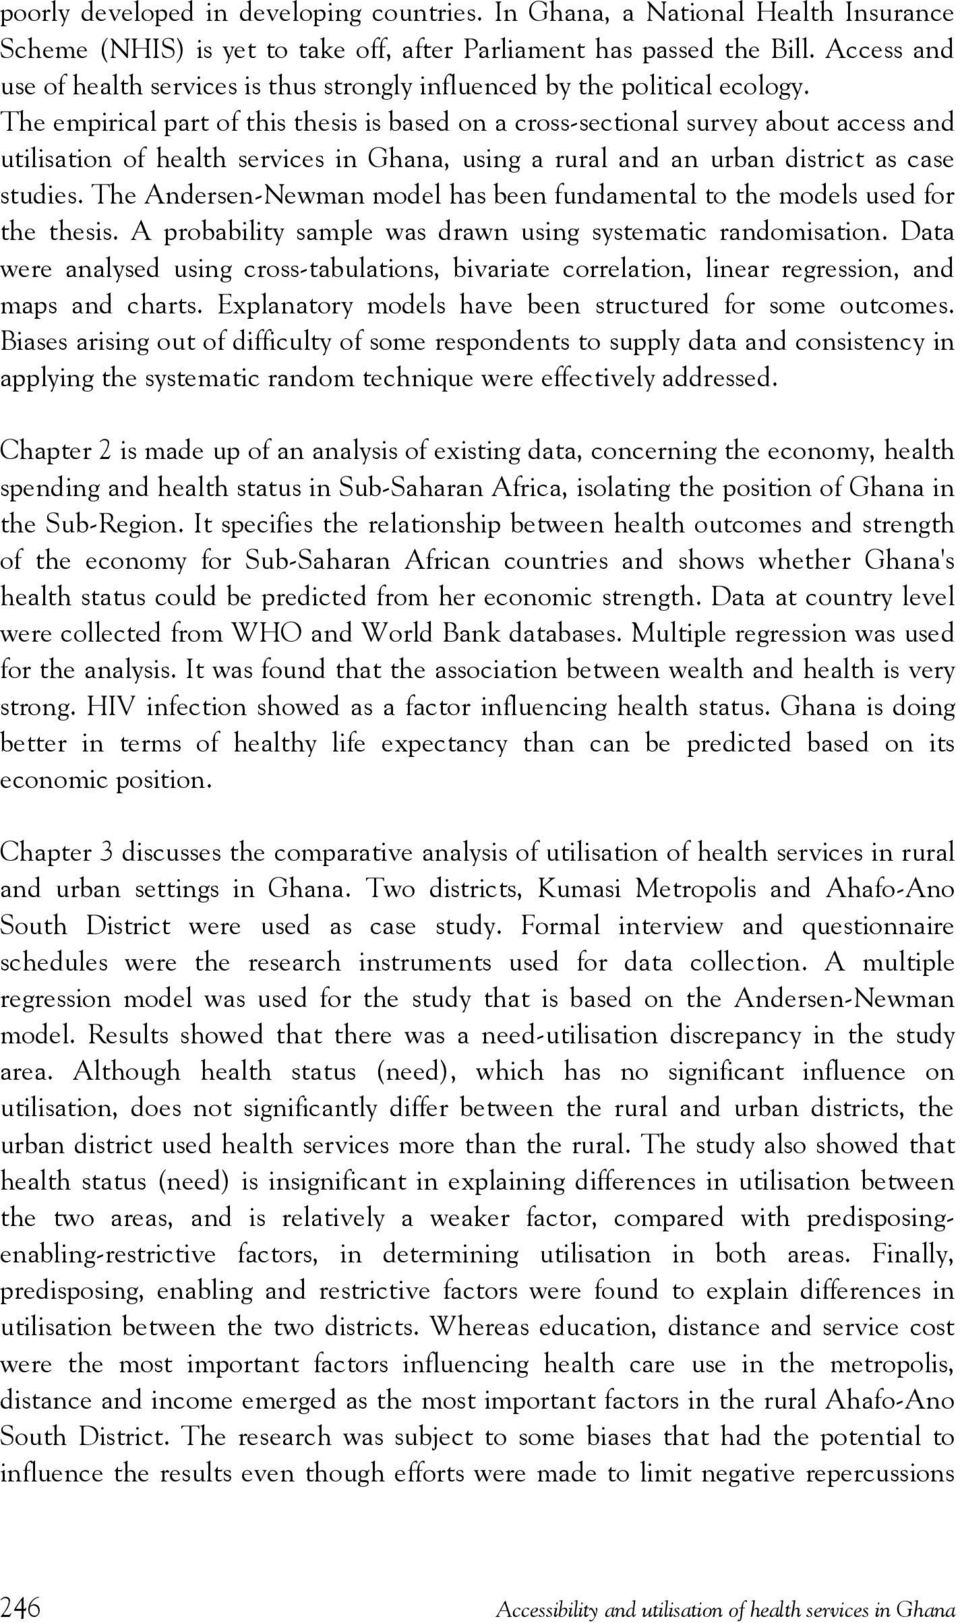 The empirical part of this thesis is based on a cross-sectional survey about access and utilisation of health services in Ghana, using a rural and an urban district as case studies.